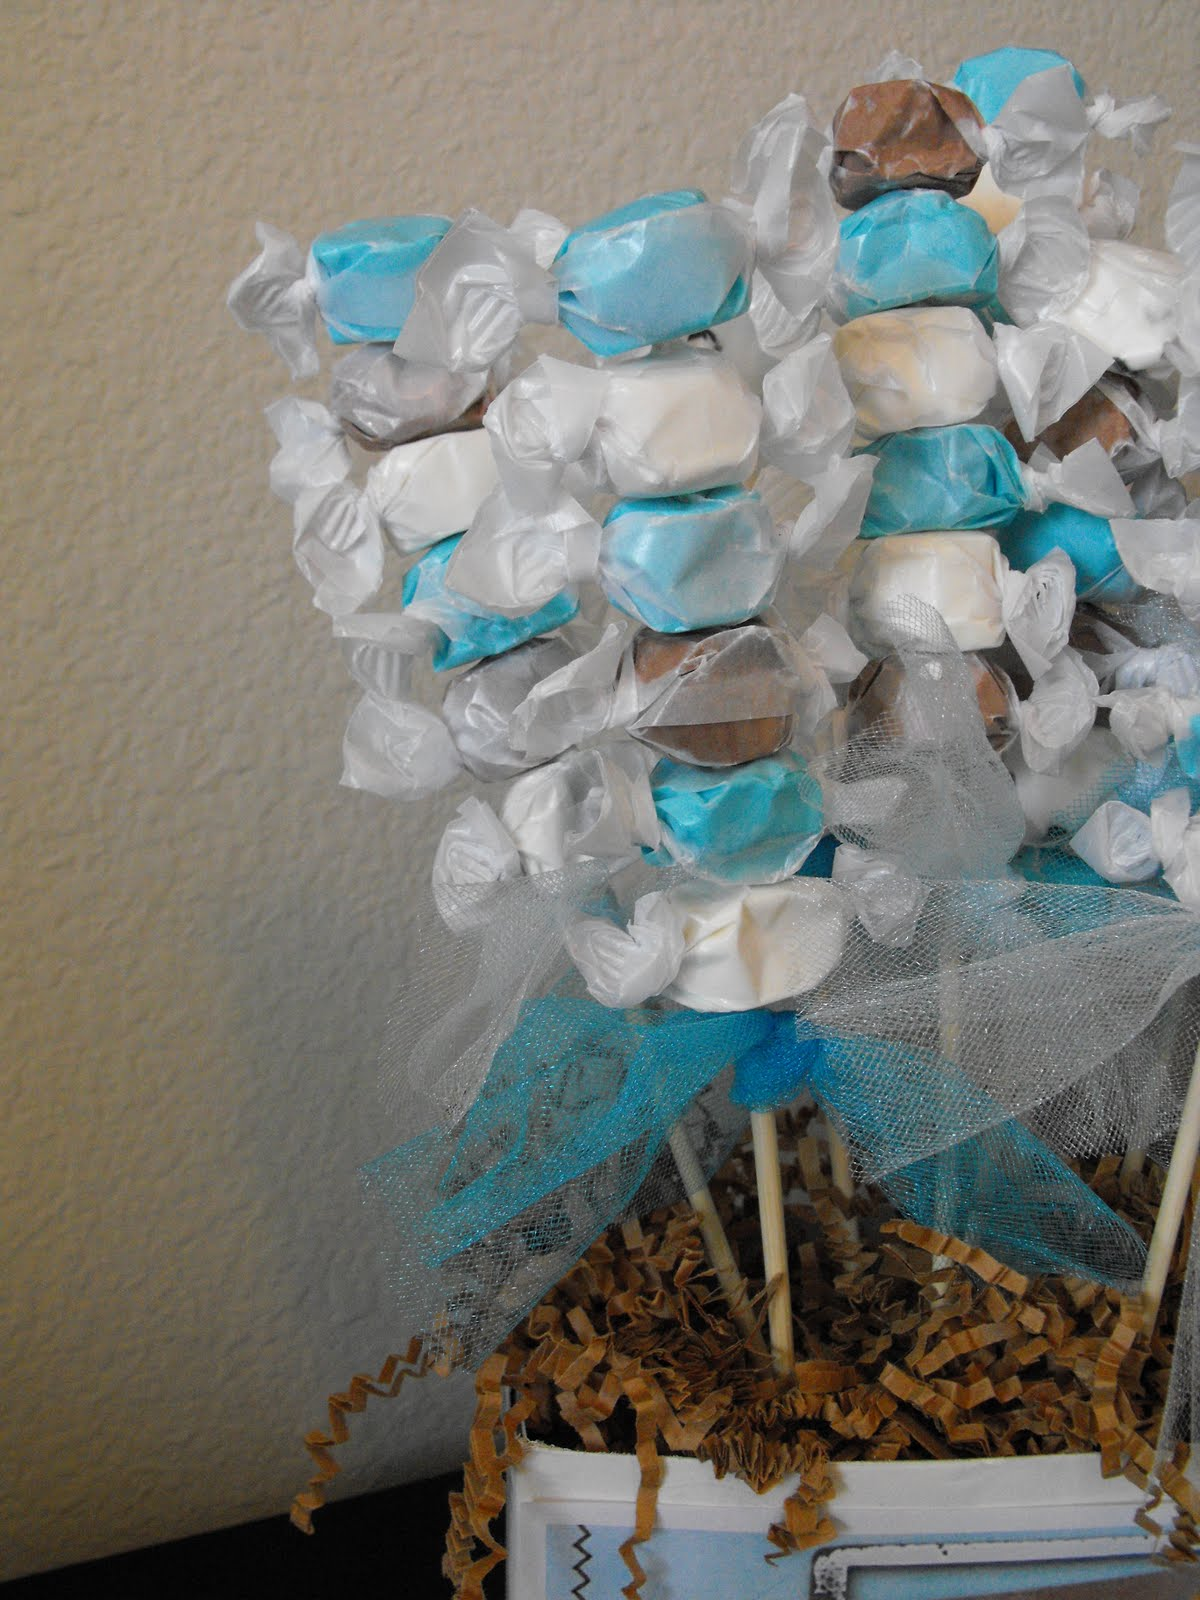 Shop for blue photo frames, elegant place card holders, glitter tea light holders, and other baby shower favors for boys.